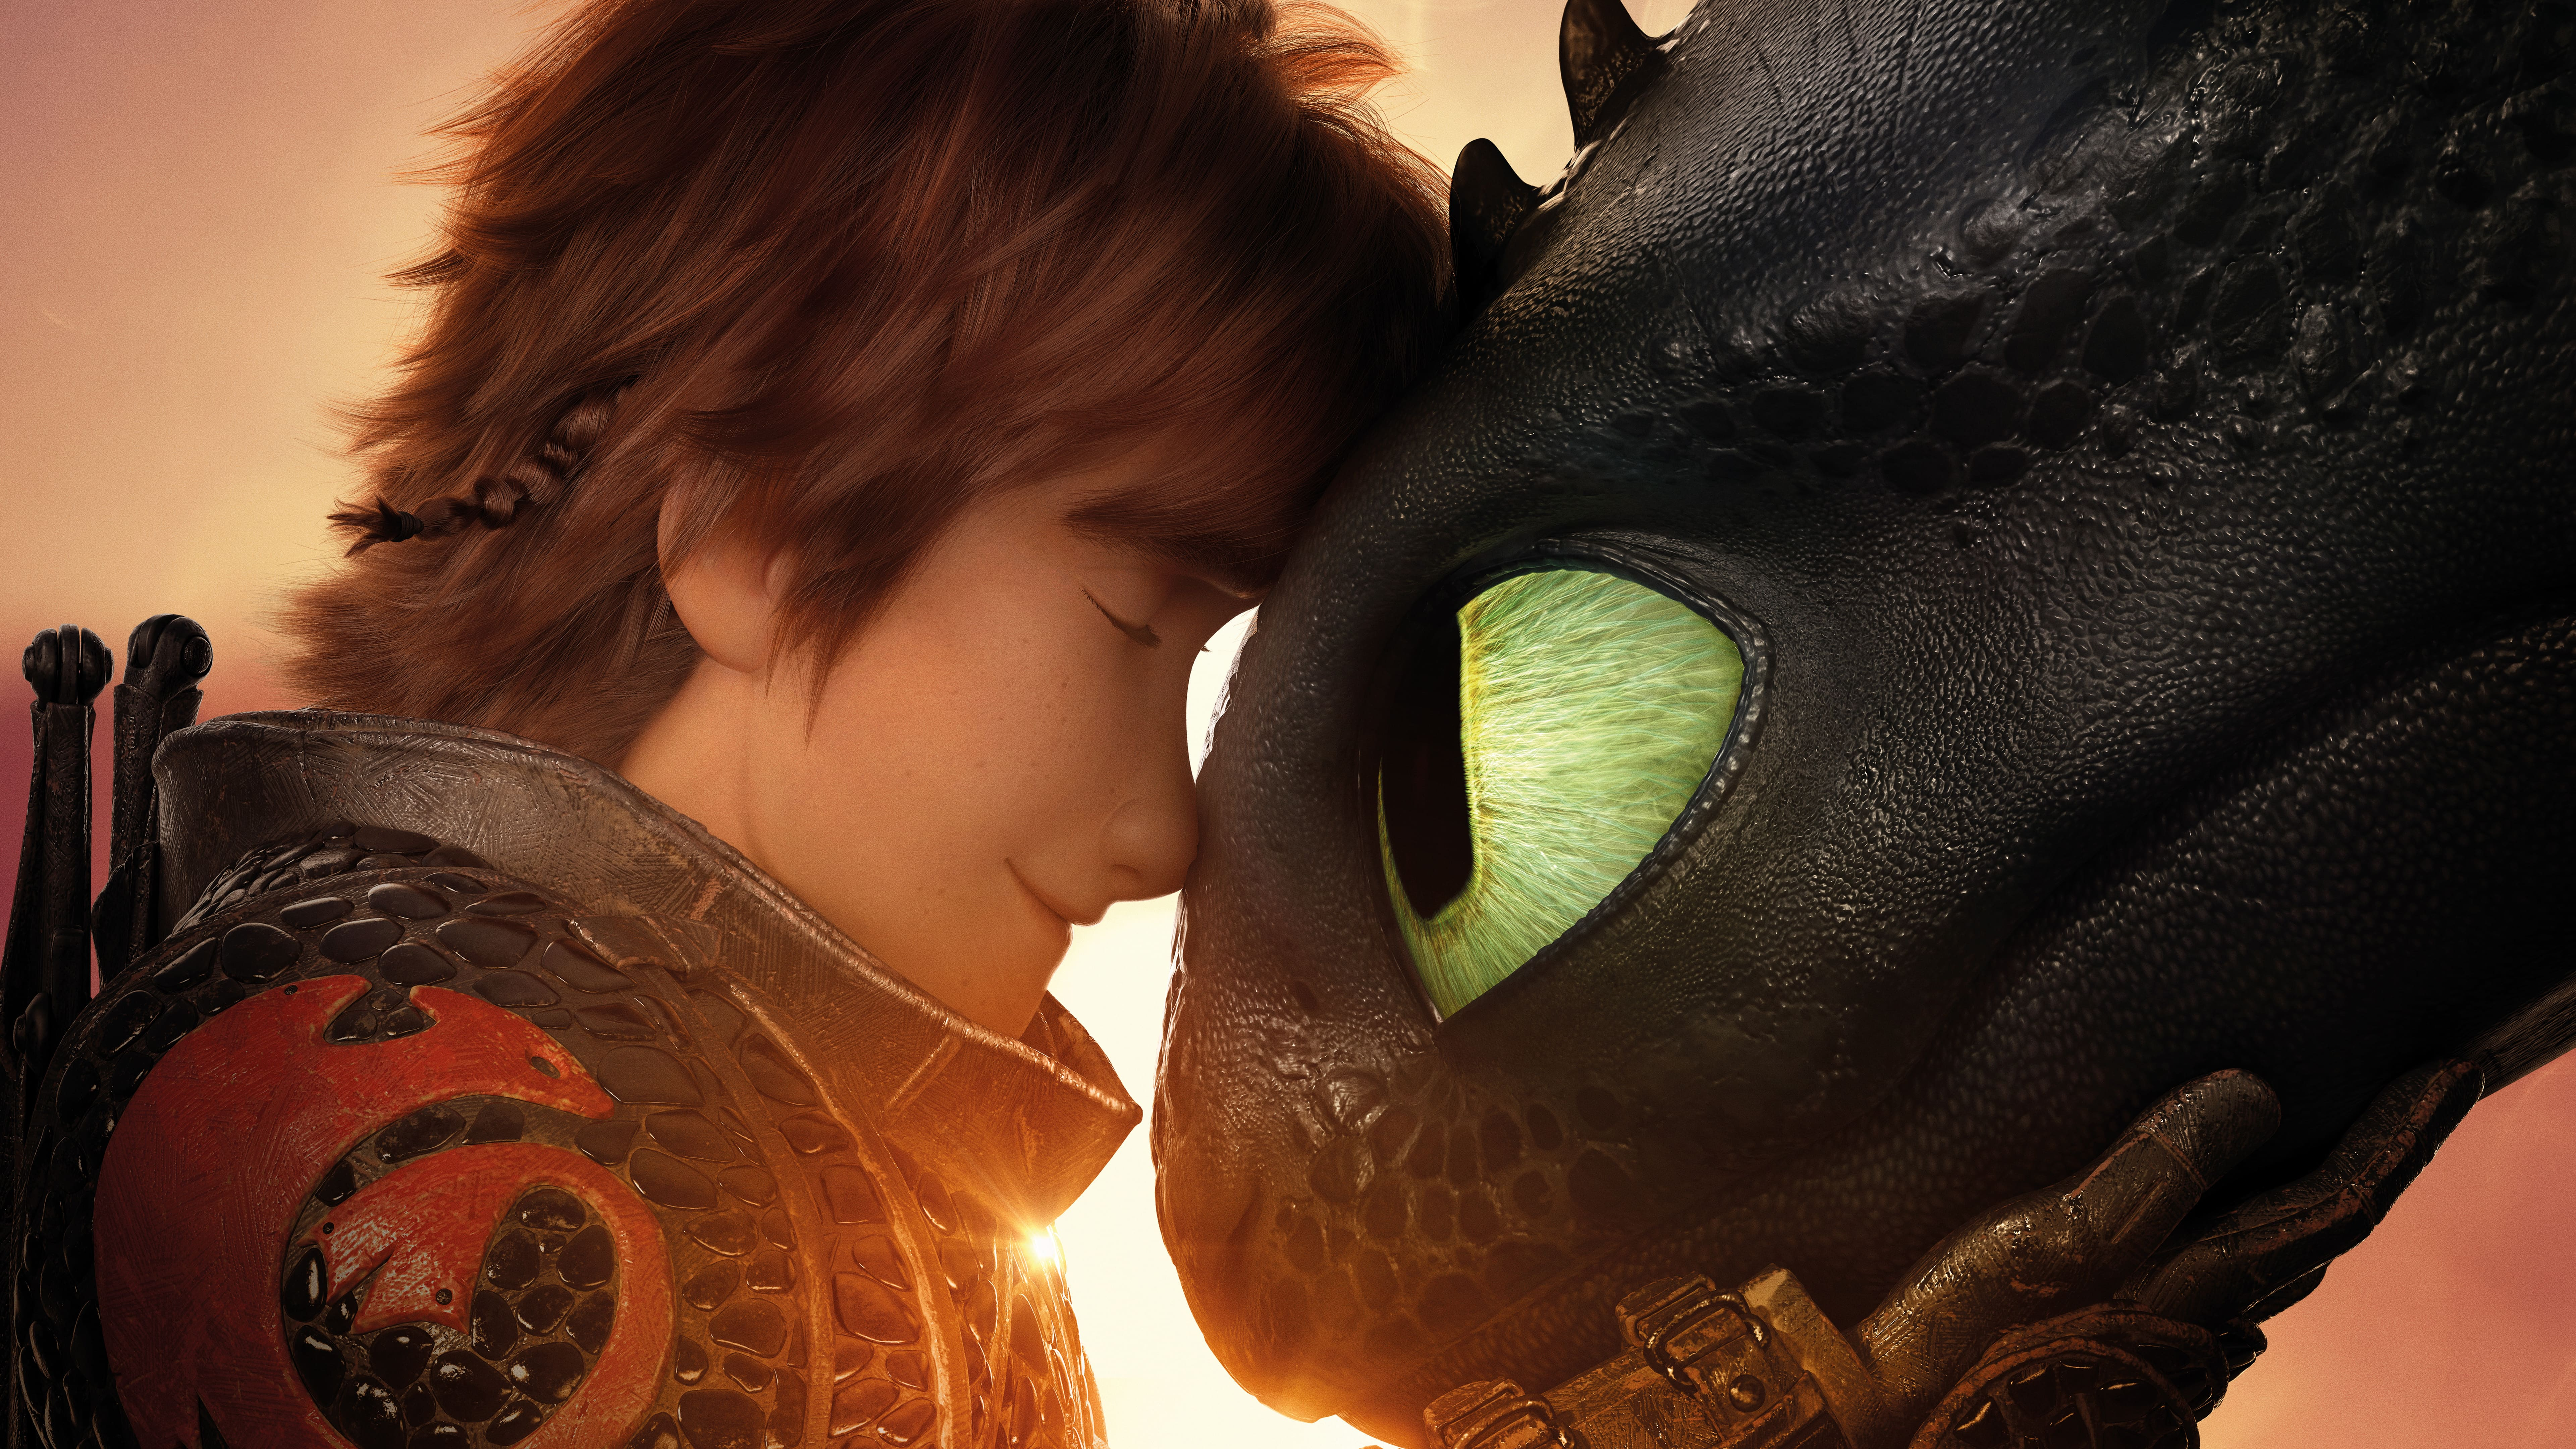 Wallpaper of hiccup toothless how to train your dragon - Toothless wallpaper ...